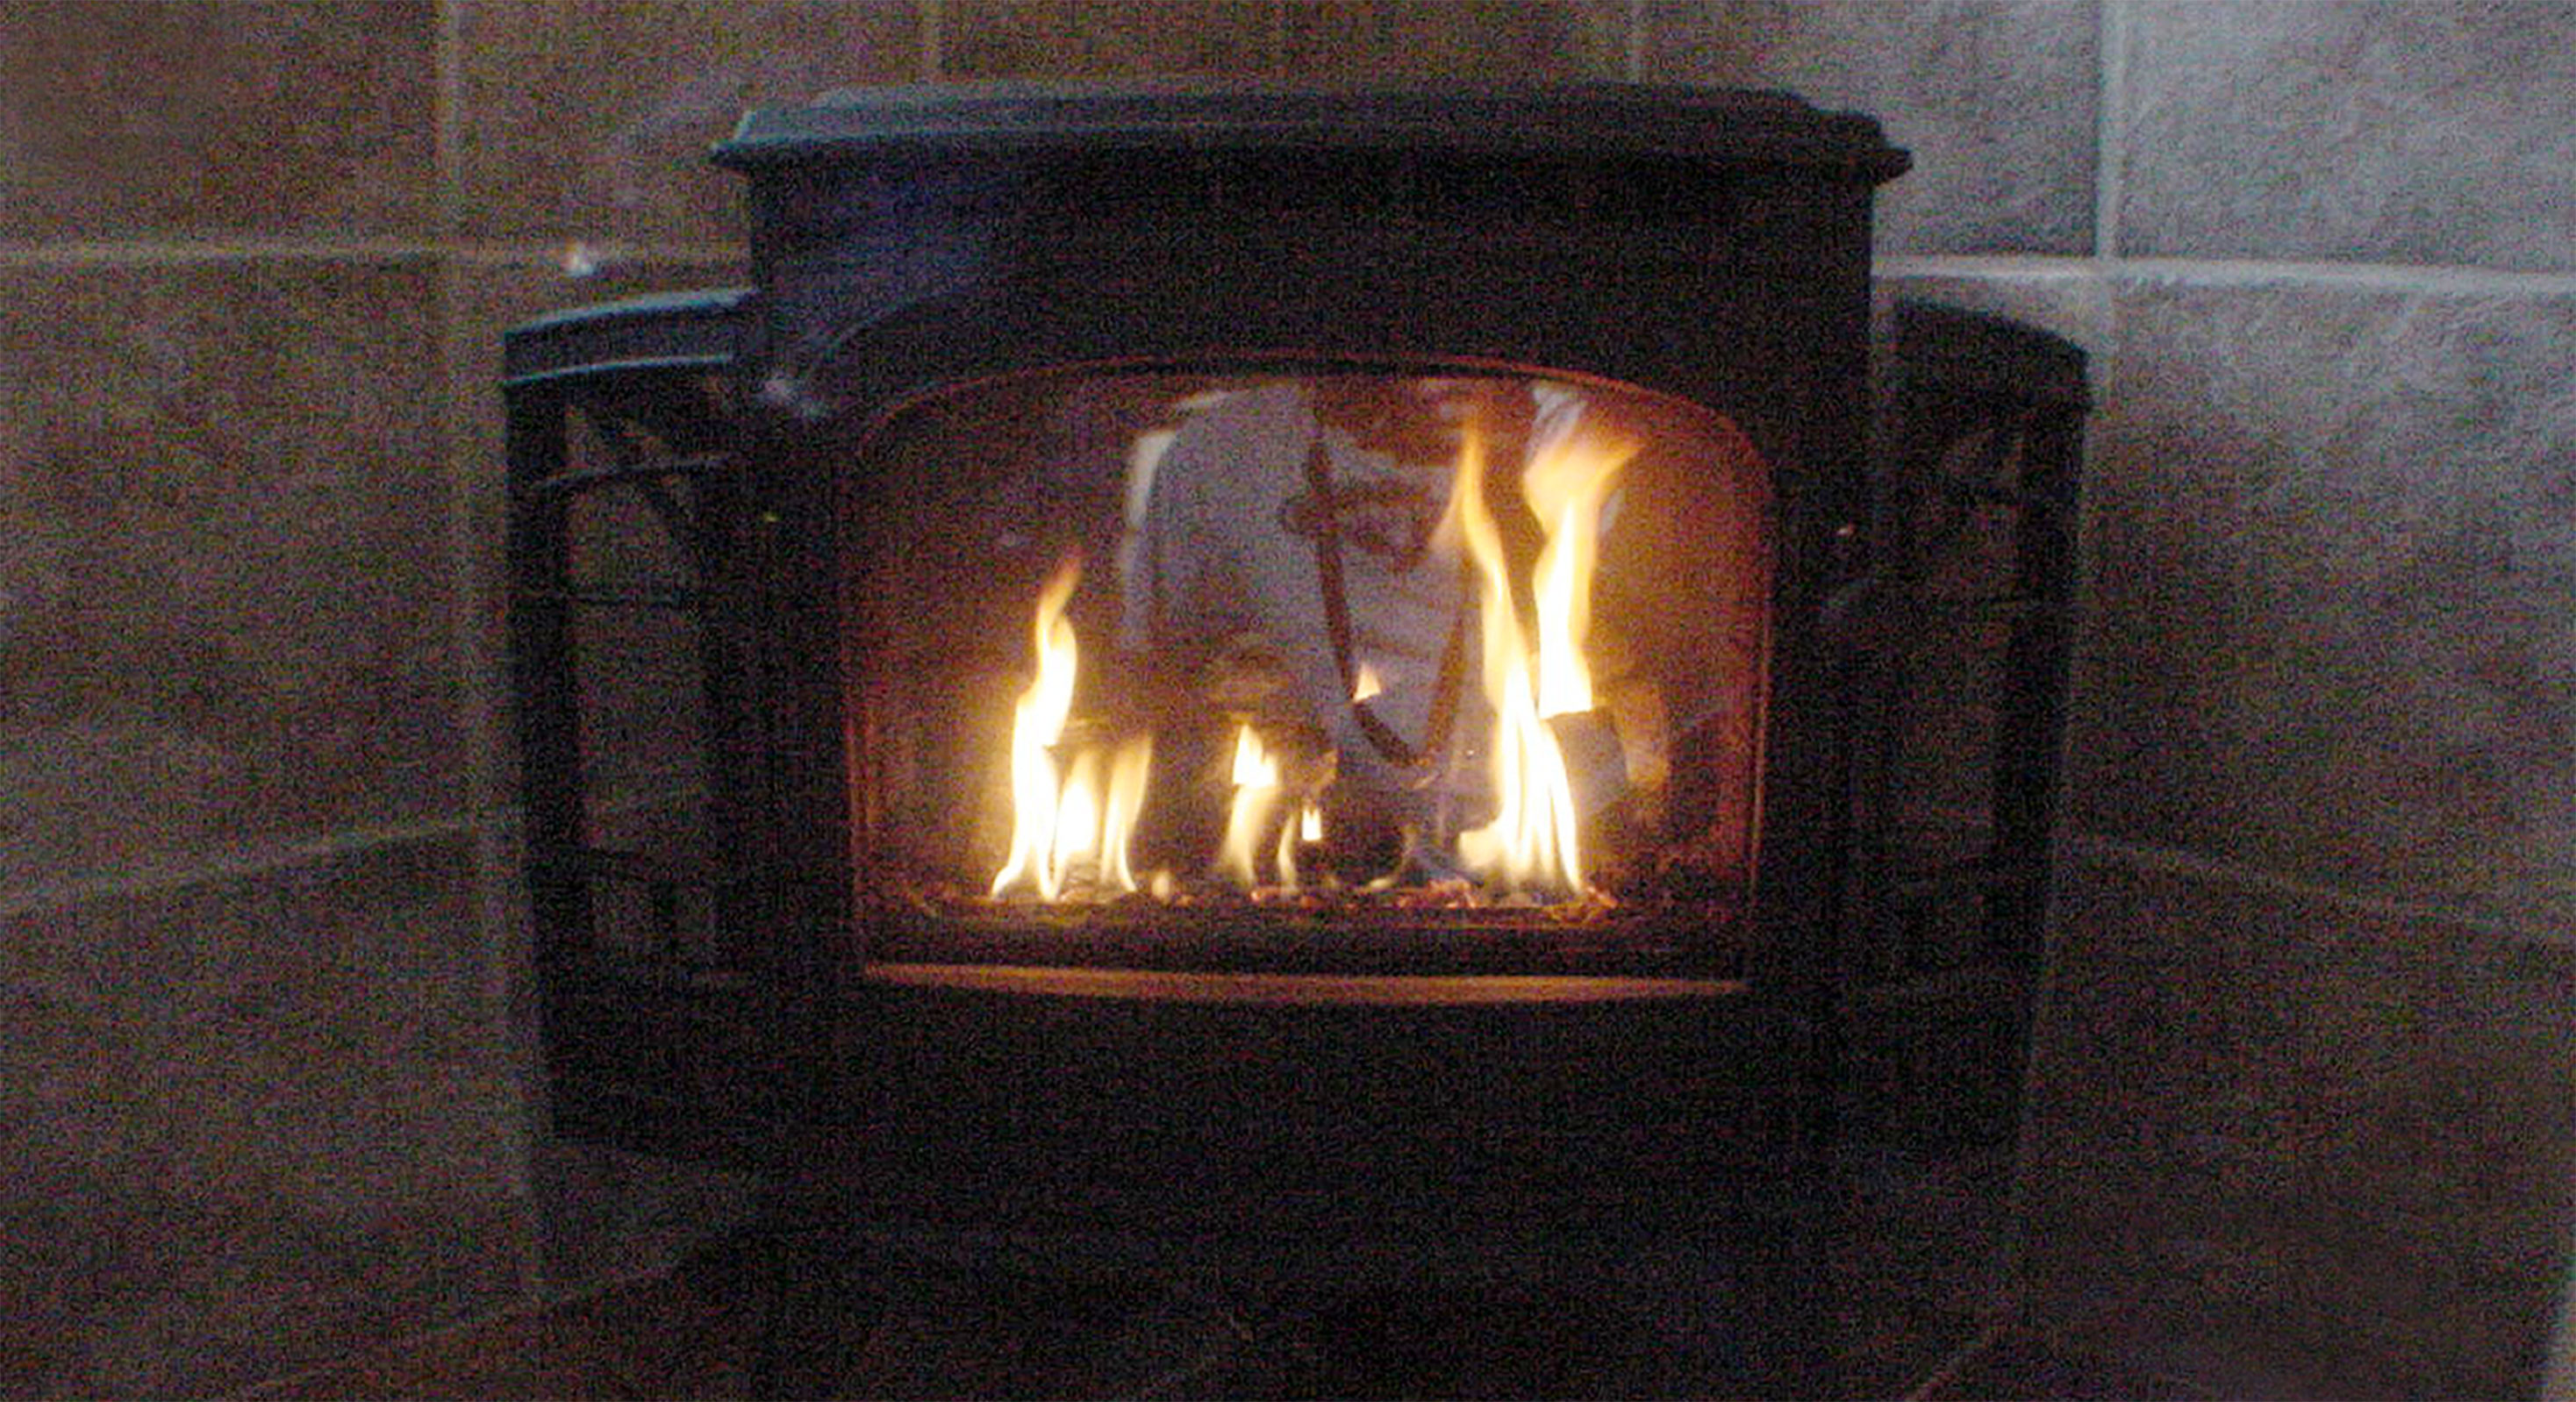 An up-close shot of the firepalce. Toasty!